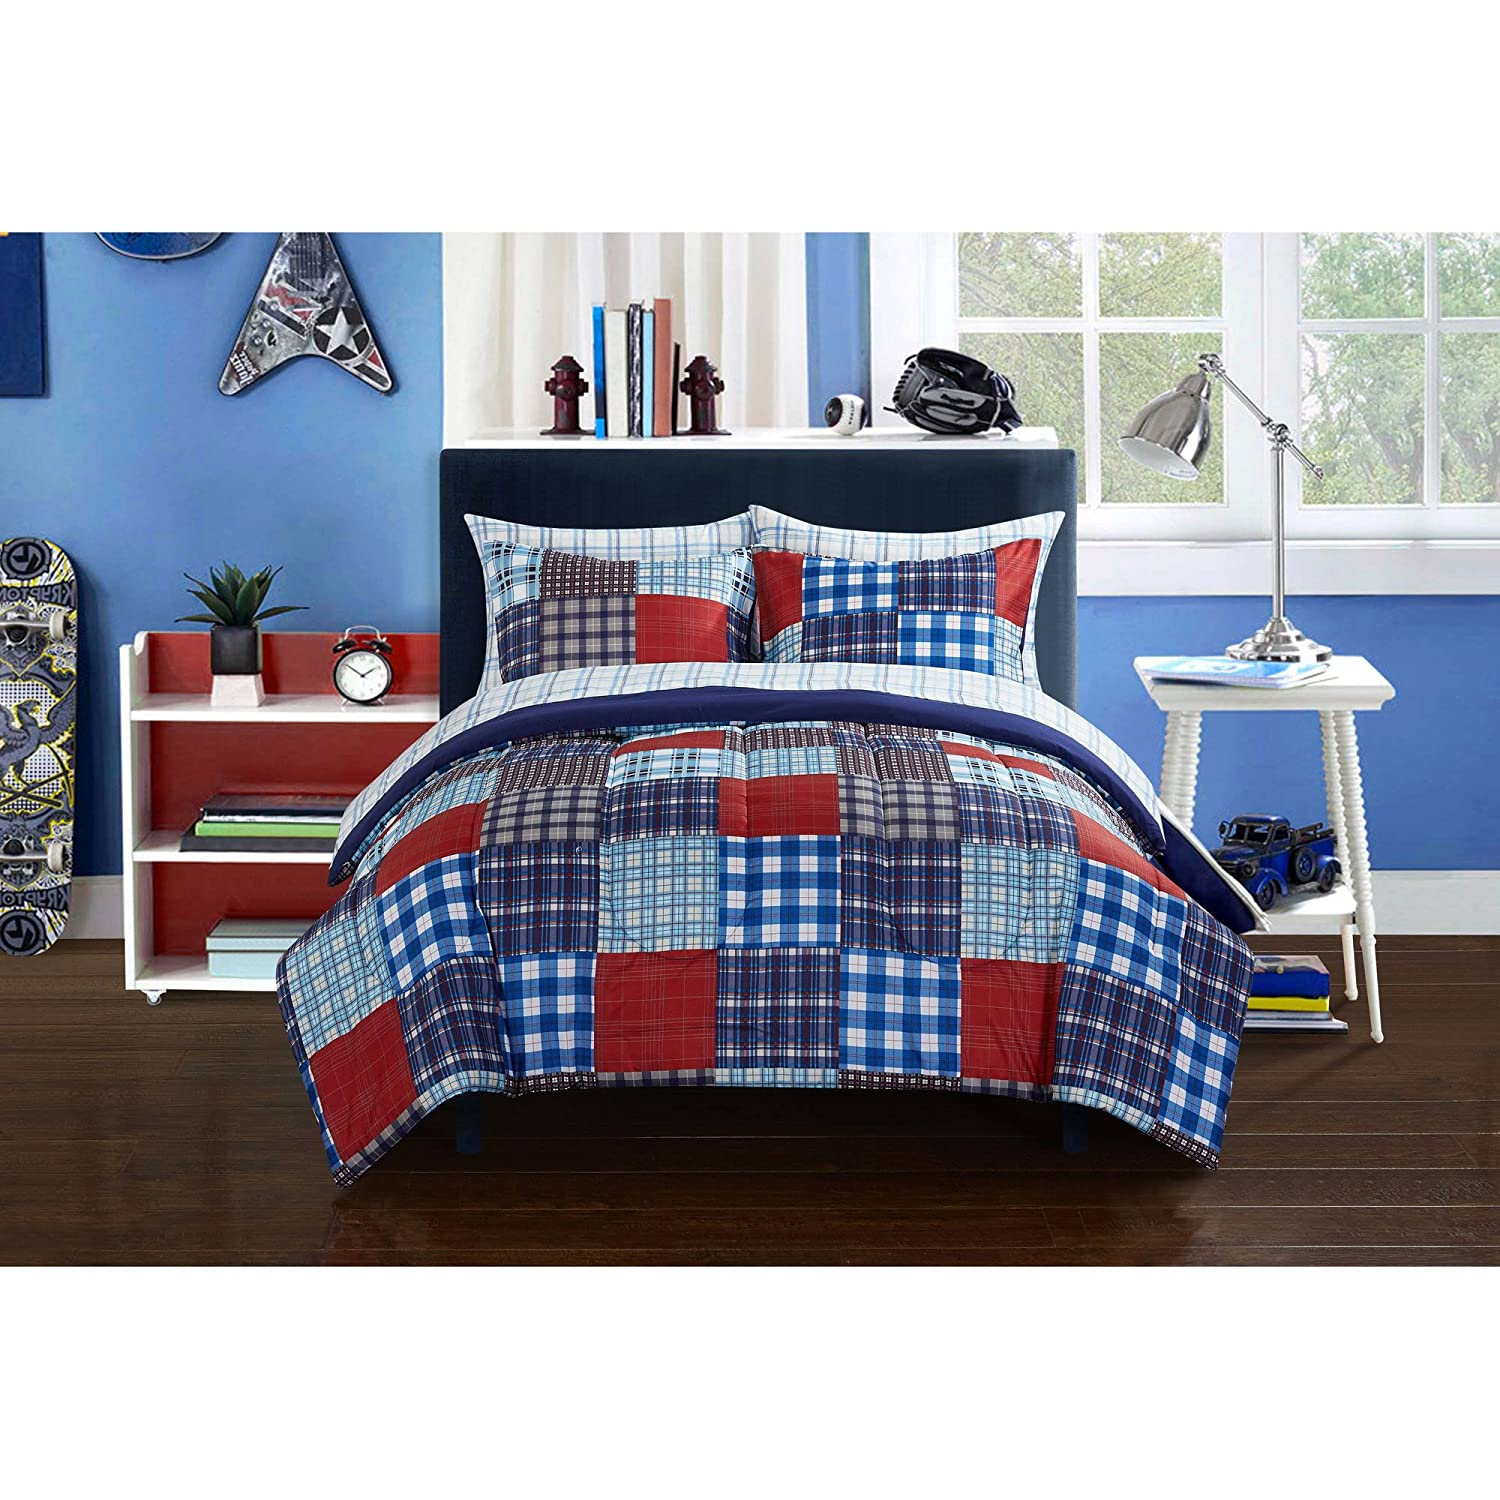 Mainstays Kids Plaid Blue Patch Reversible White Bedding Full Comforter Set for Boys 7 Piece in a Bag